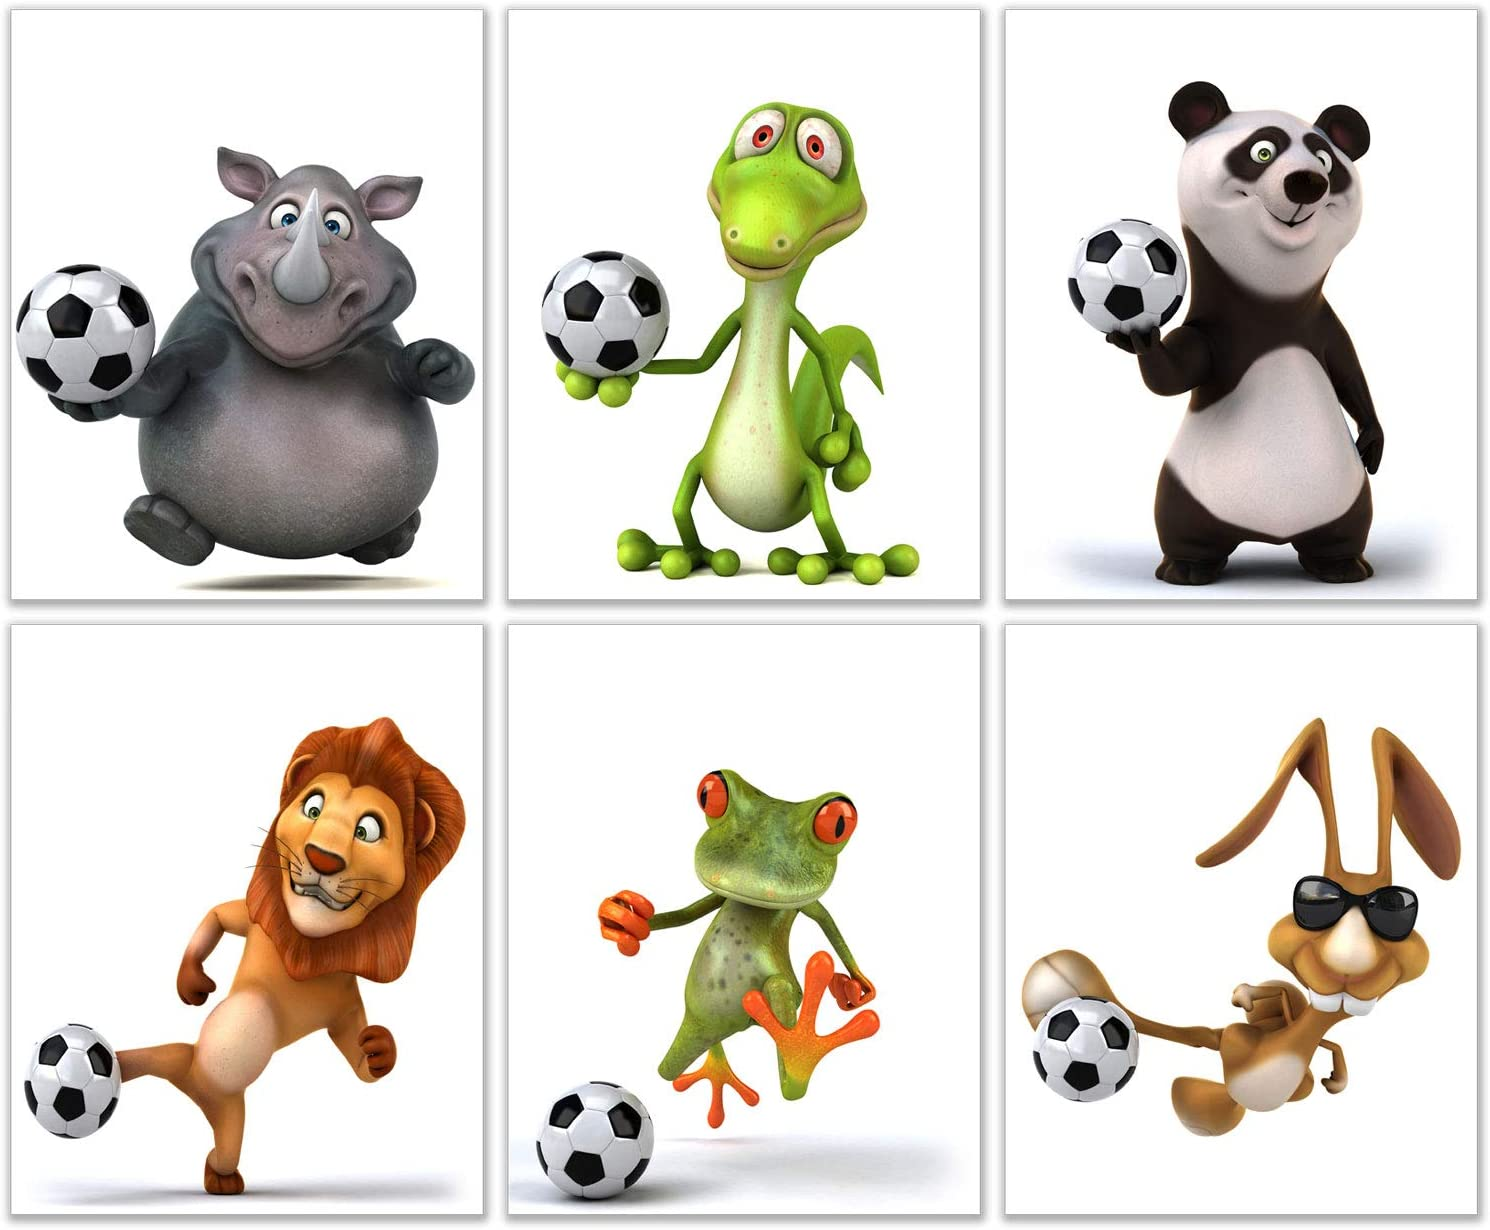 Soccer Animals Kids Wall Art Decor Prints - Set of 6 (8x10) Inch Poster Photos - Bedroom Boys Girls Gift Idea